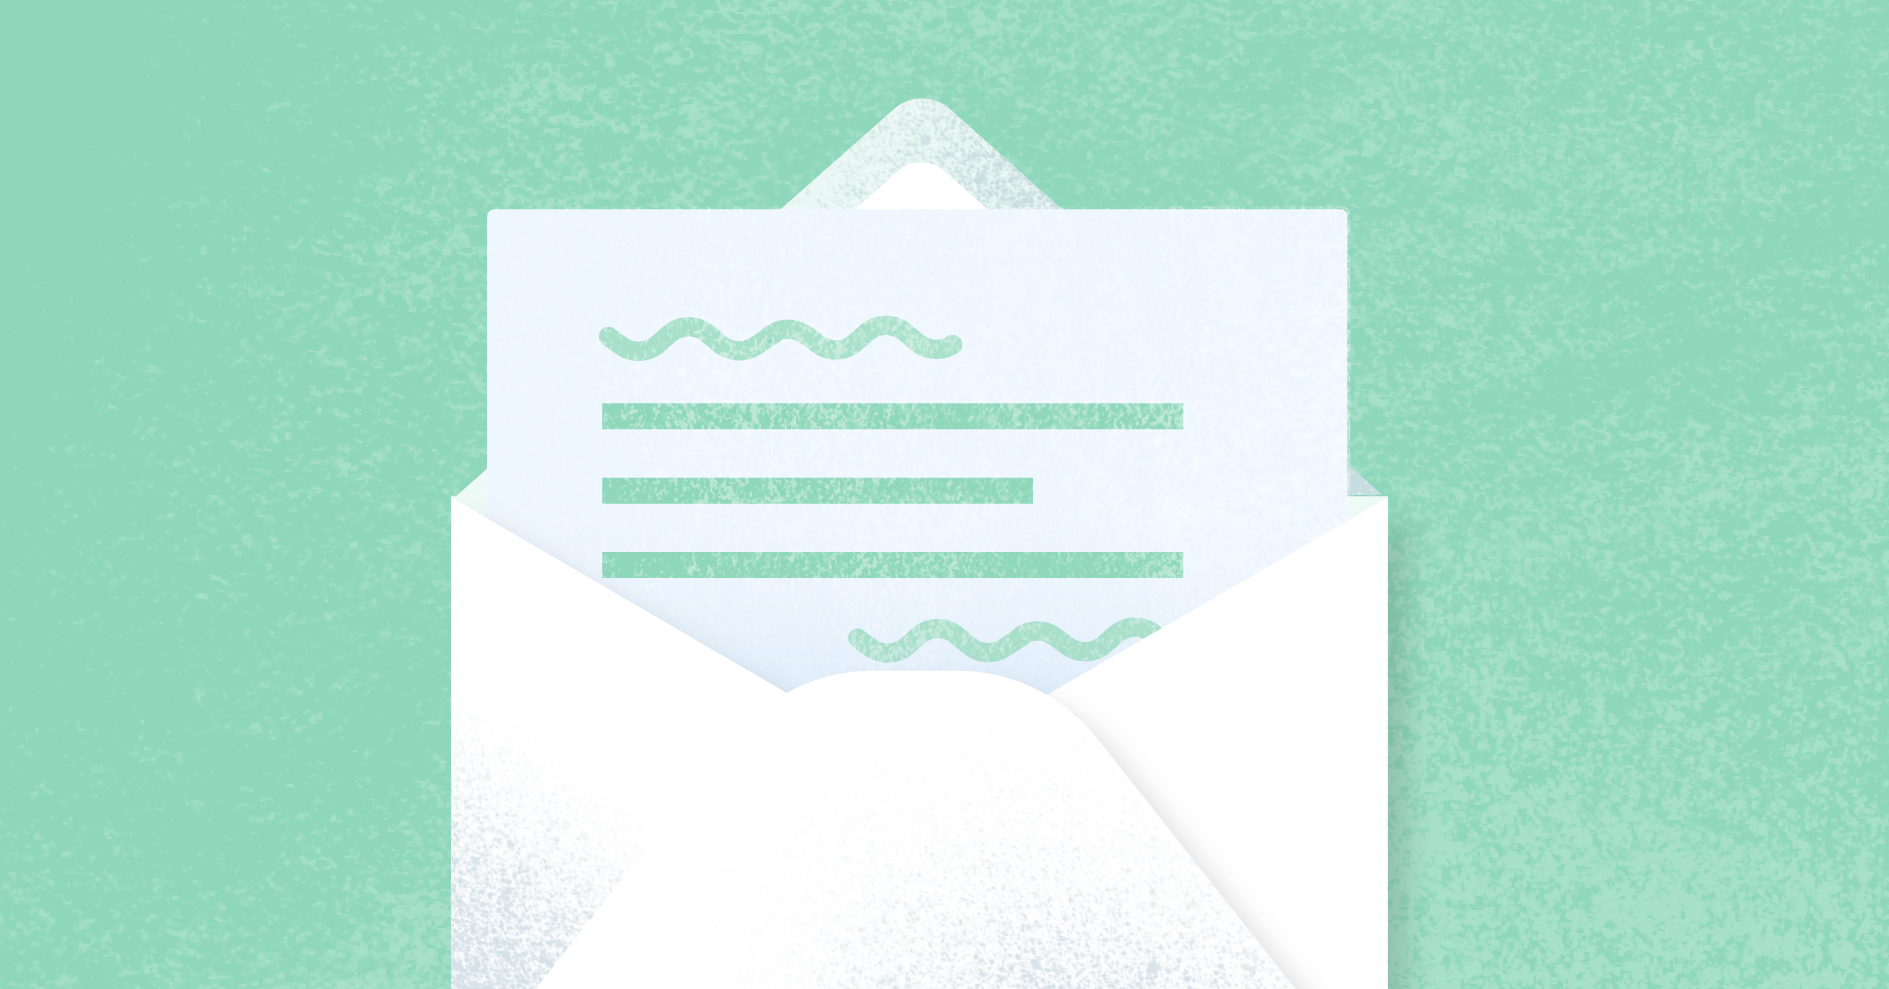 A open letter on a light green background.